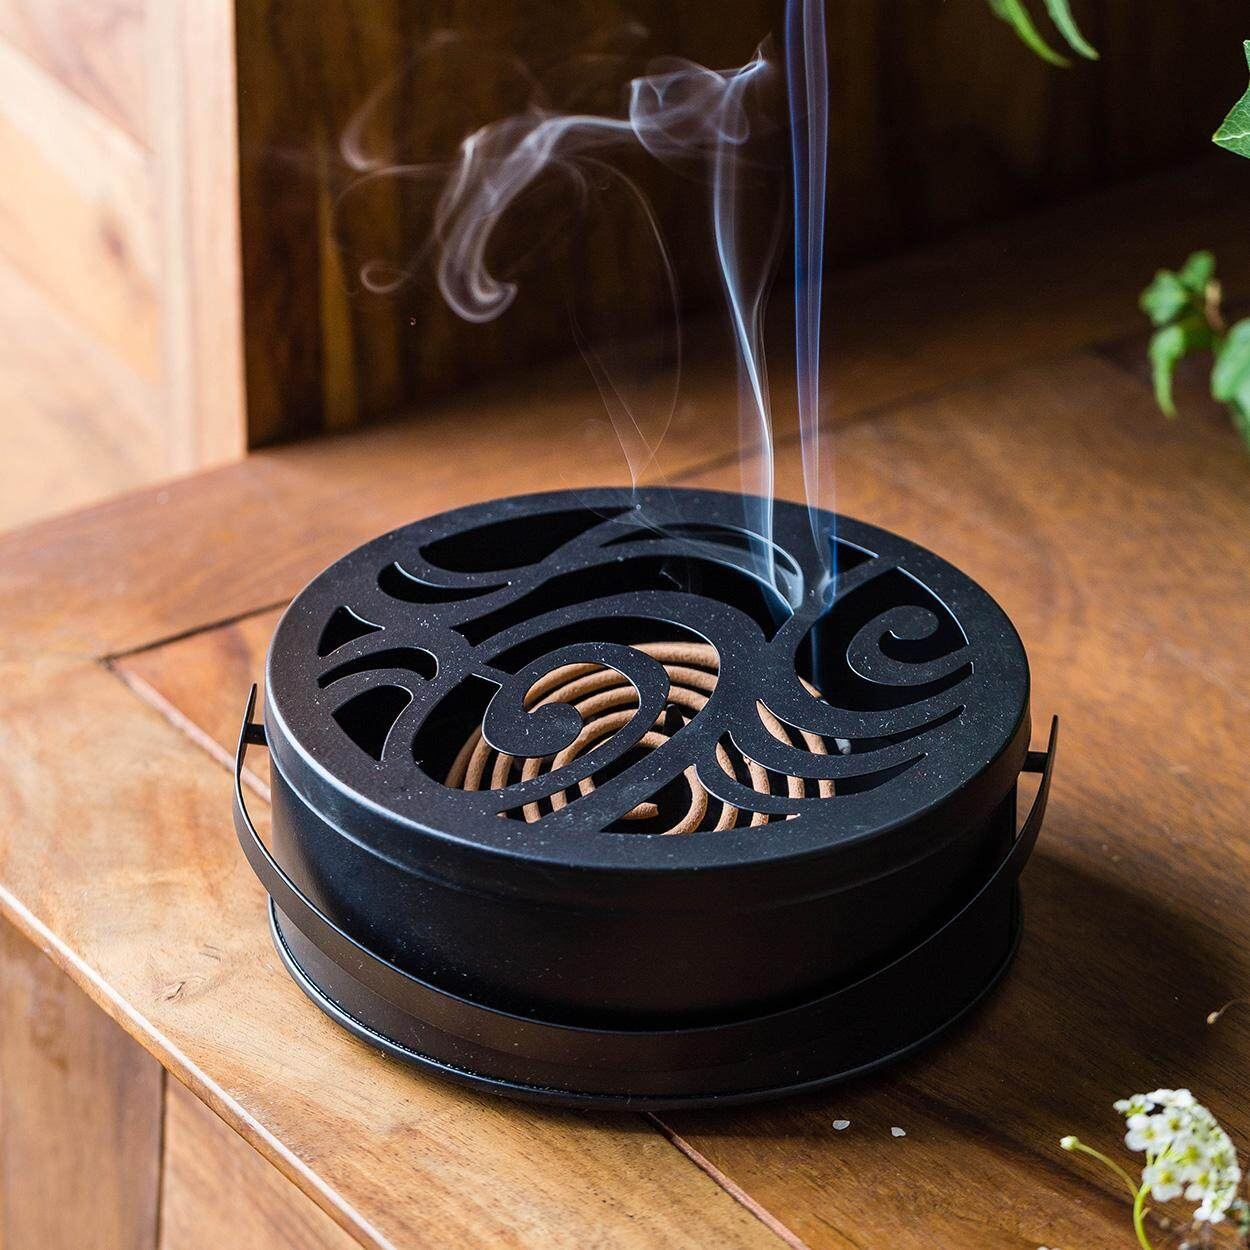 MONAZONE Creative Mosquito-repellent incense holder Japanese retro portable aromatherapy stove